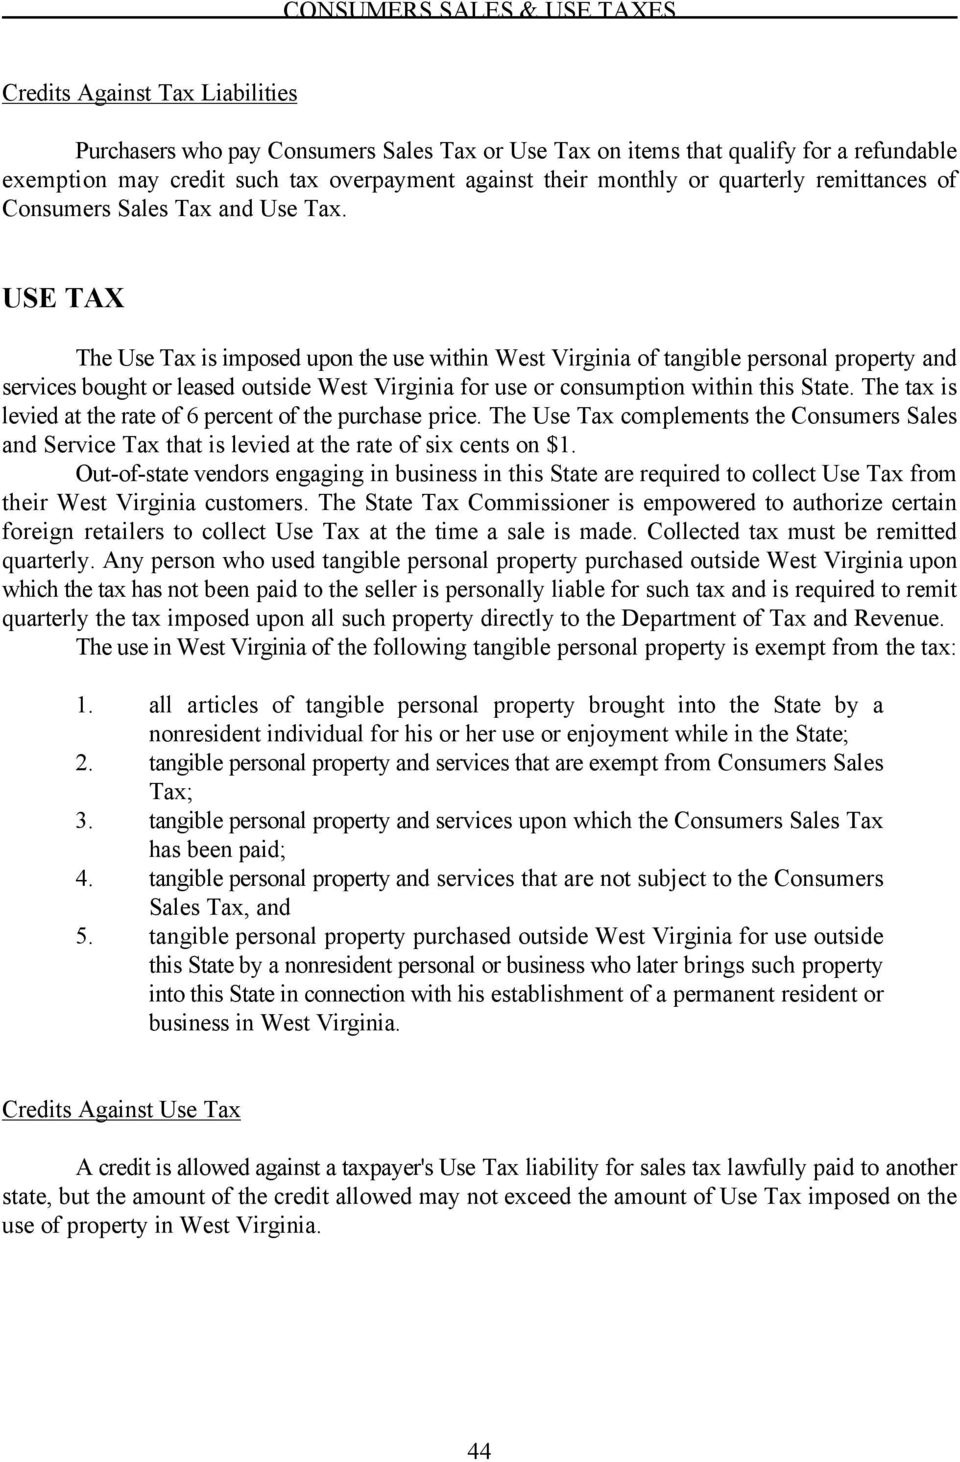 USE TAX The Use Tax is imposed upon the use within West Virginia of tangible personal property and services bought or leased outside West Virginia for use or consumption within this State.